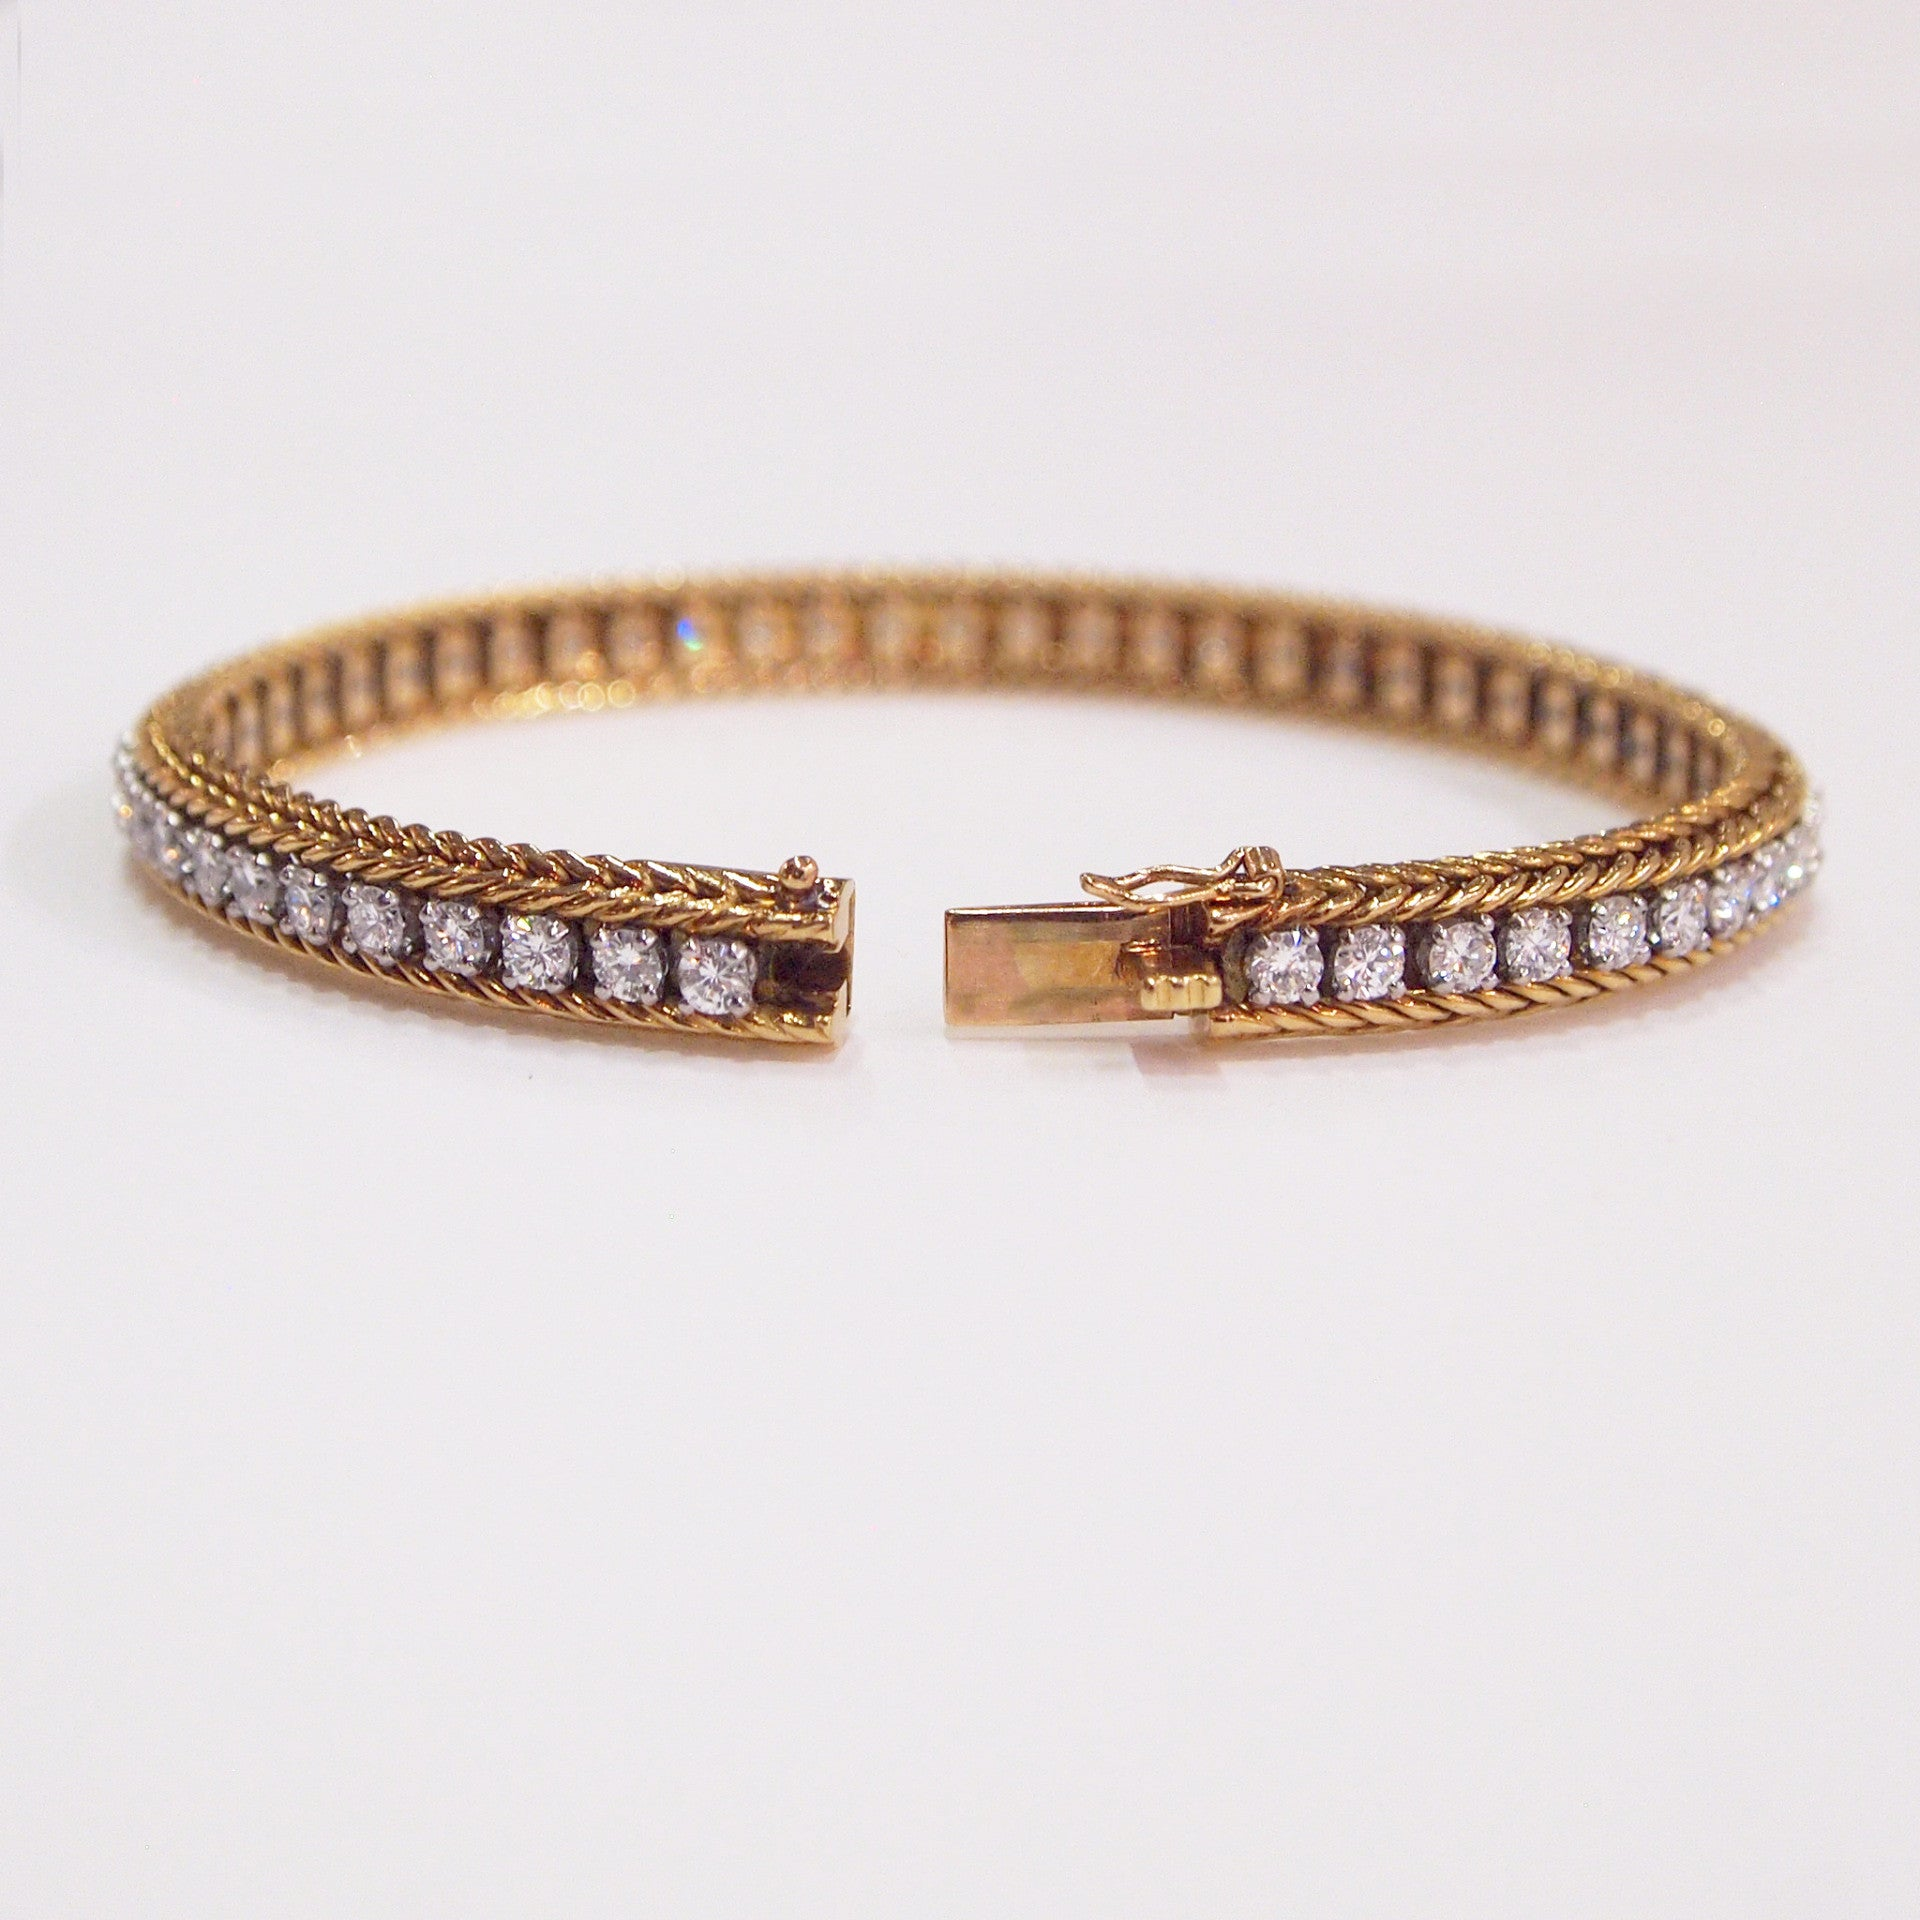 18K yellow gold and platinum antique Oscar Heyman design bracelet with 54 round diamonds (G/H color, VS2 clarity)